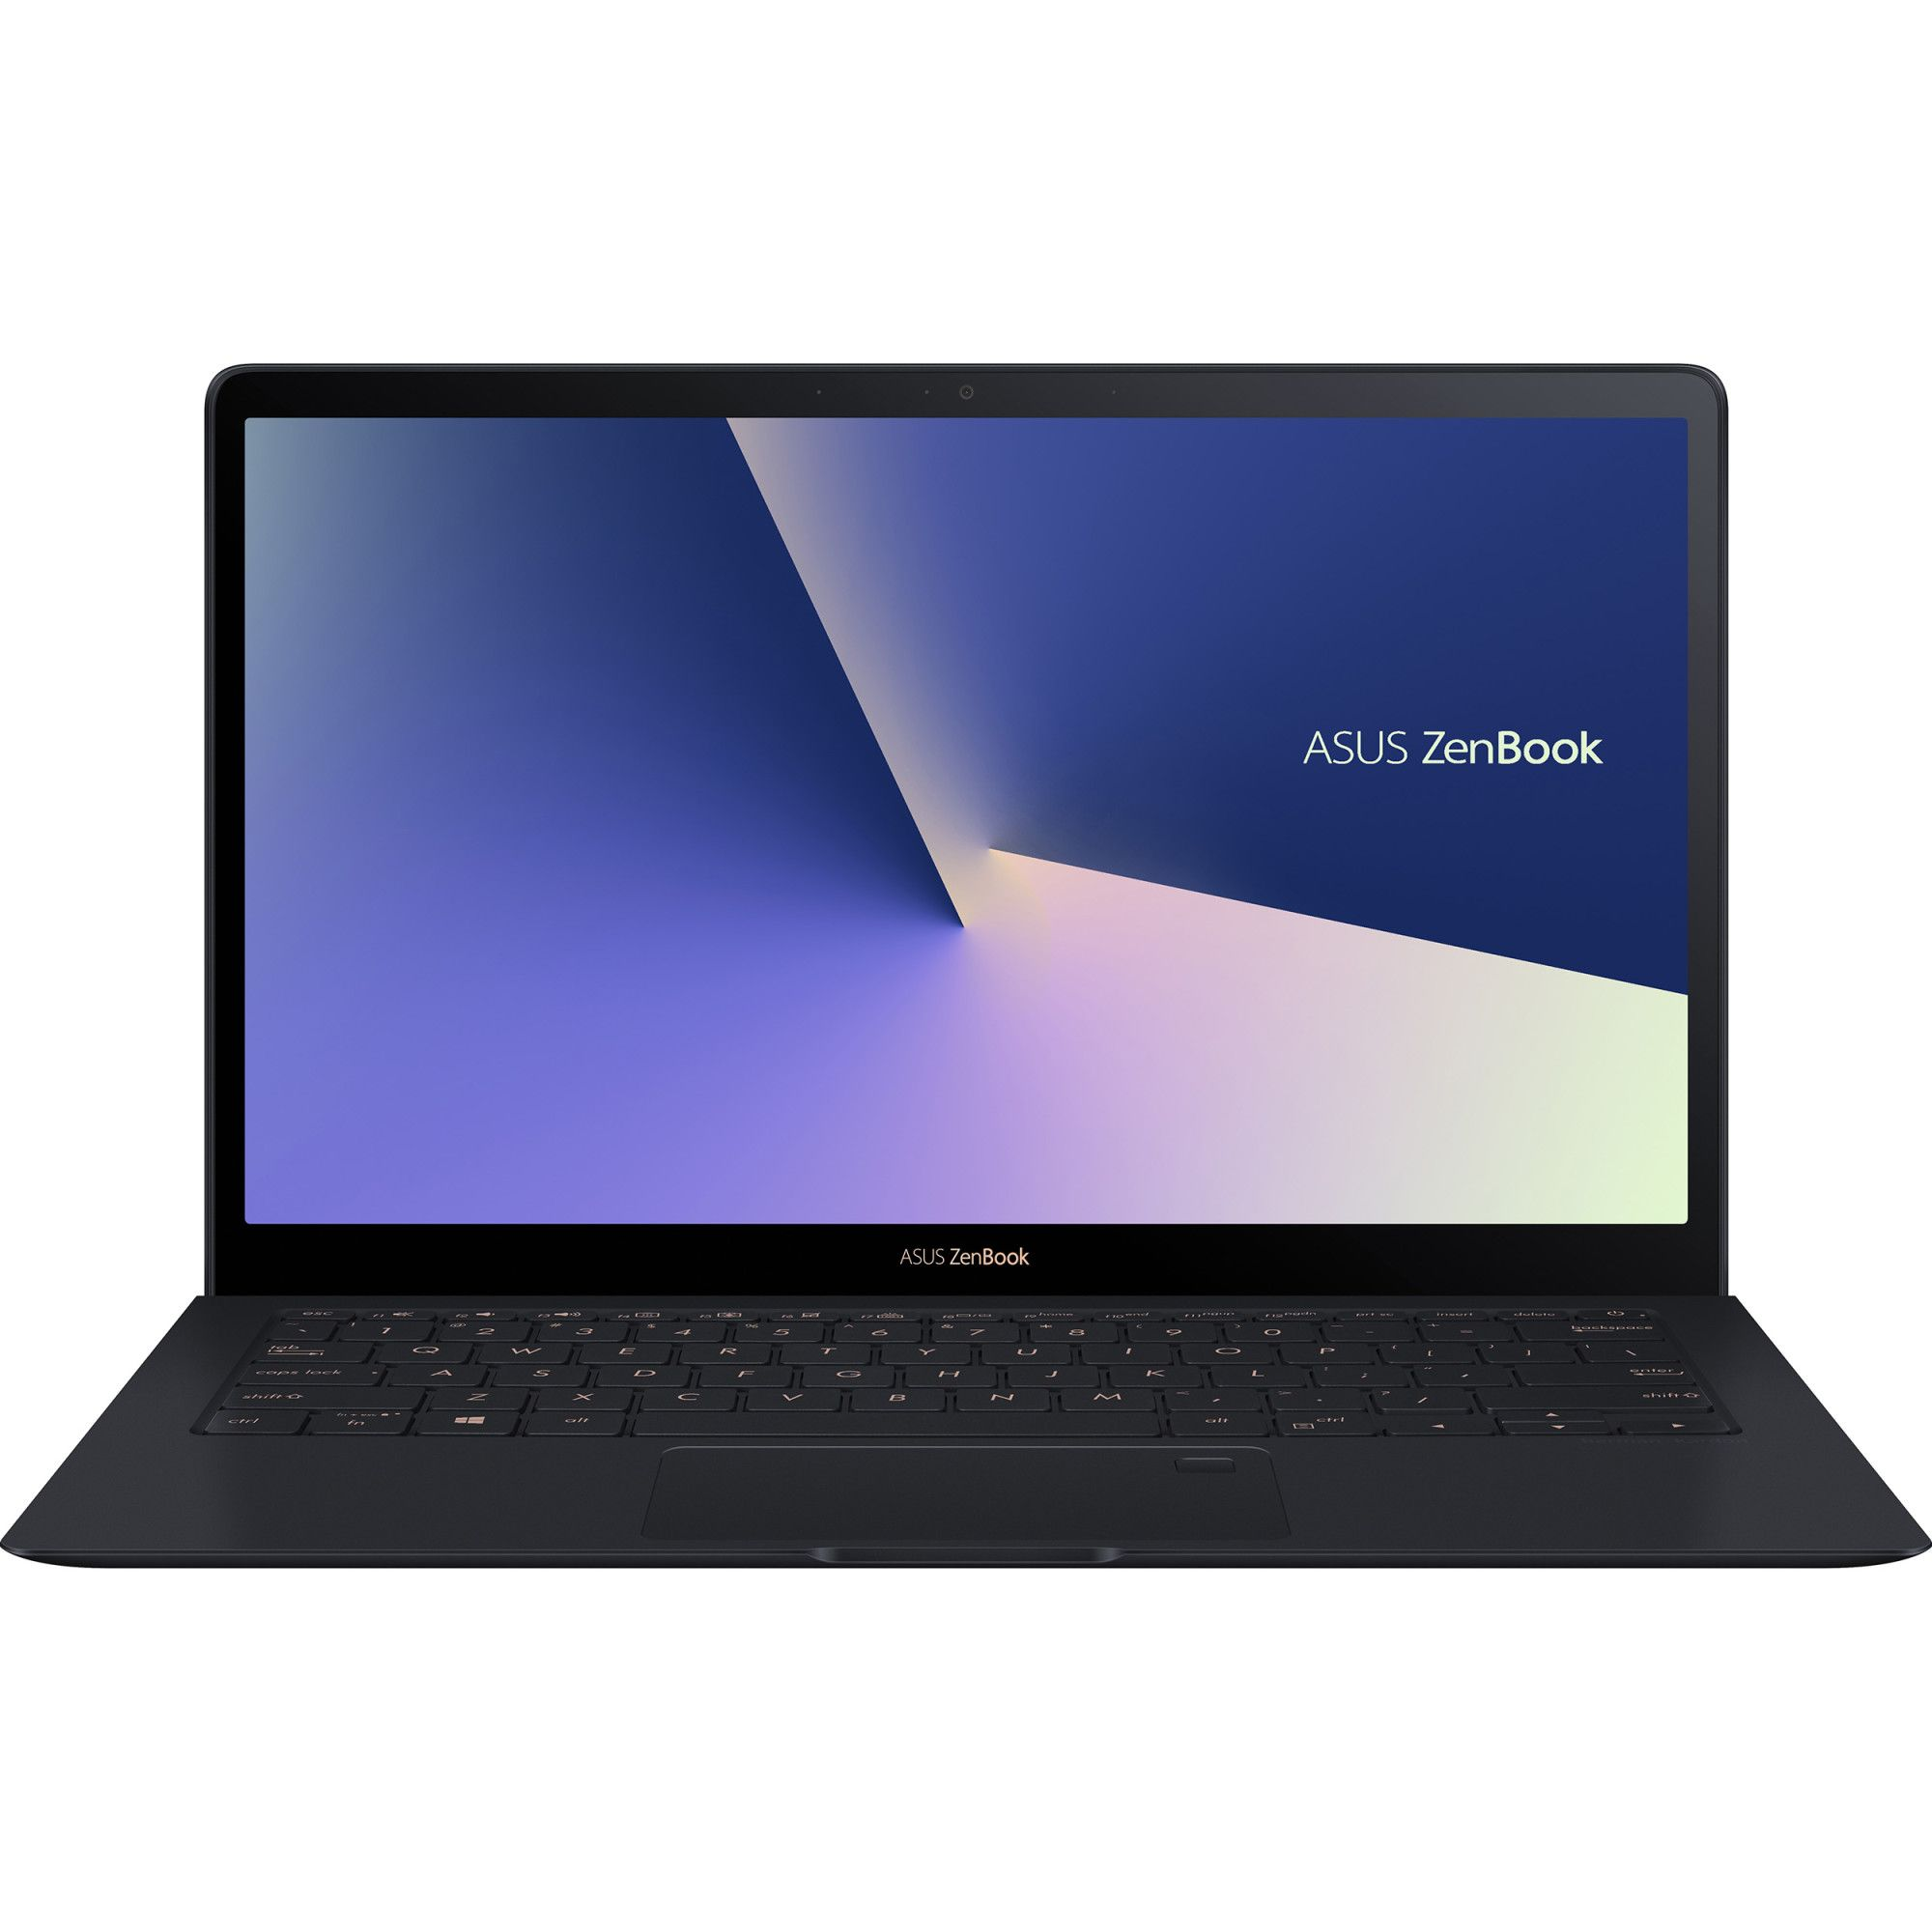 Ultrabook Asus ZenBook S UX391FA 13.3 Full HD Intel Core i5-8265U RAM 8GB SSD 256GB Windows 10 Pro Albastru